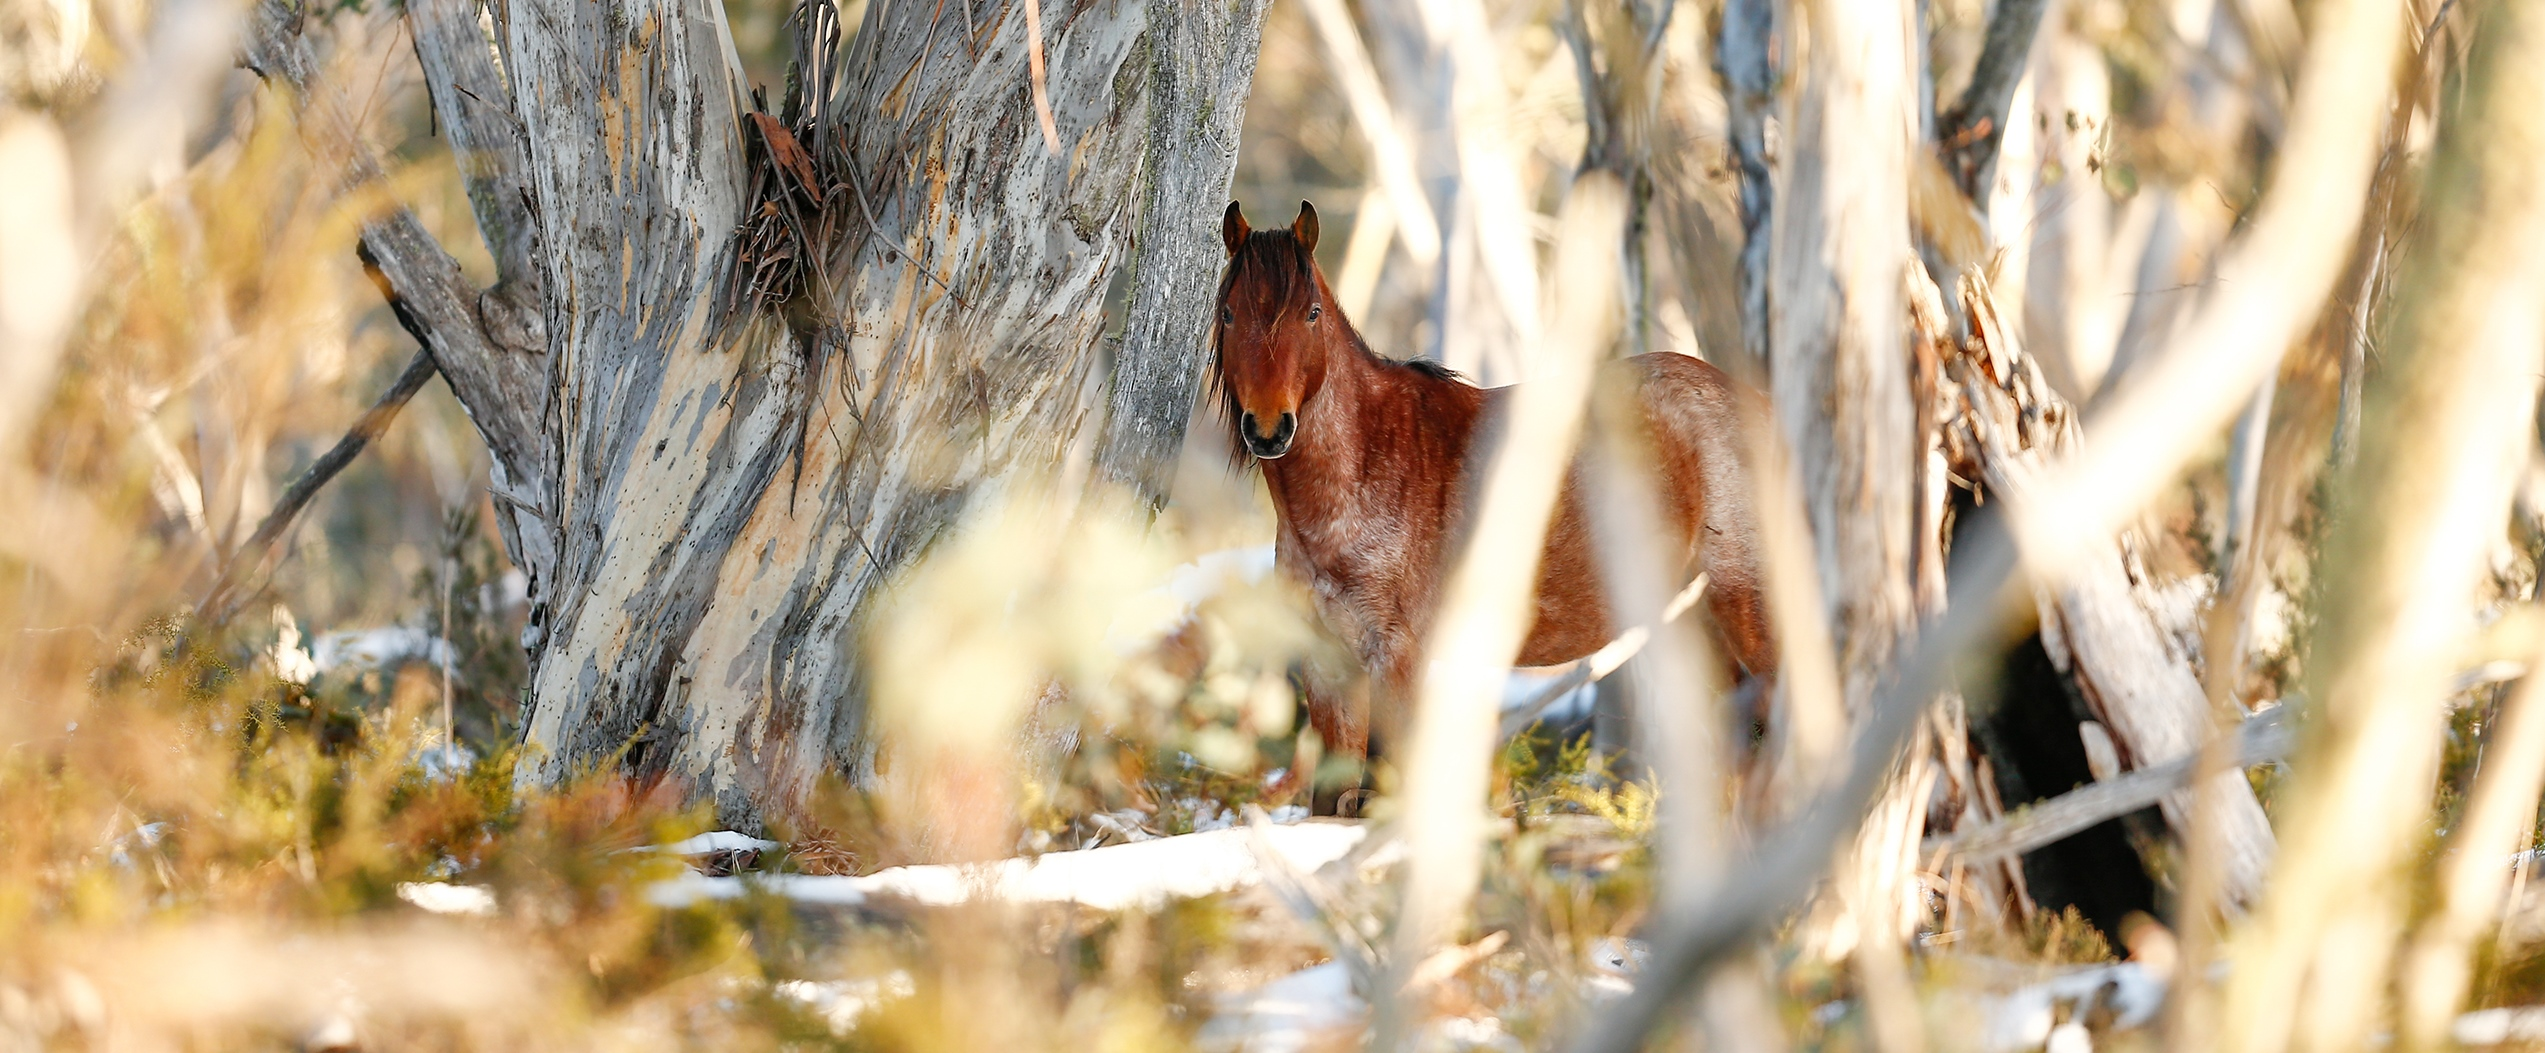 Reunited with the Roan Bachelor: Australian Snowy Mountains, Wild Horses of the World